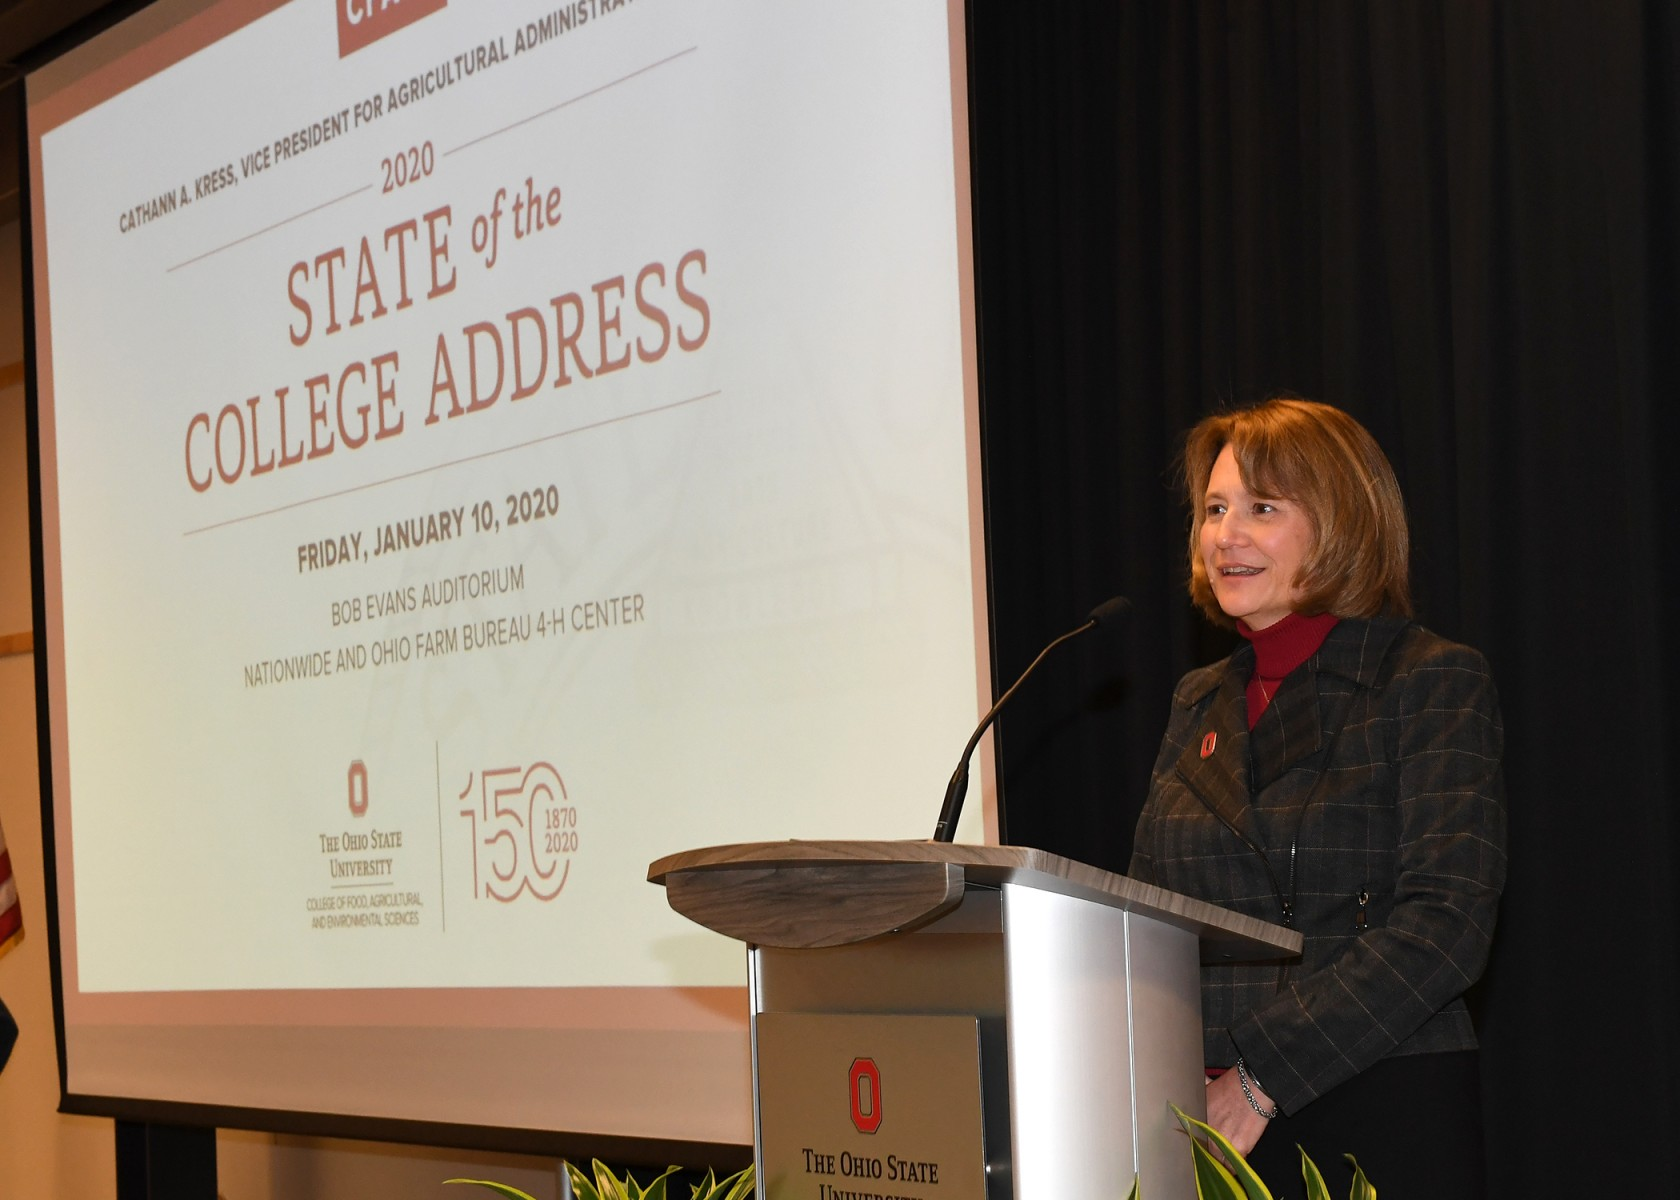 Cathann A. Kress, vice president of agricultural administration and dean of CFAES, delivered the state of the college address